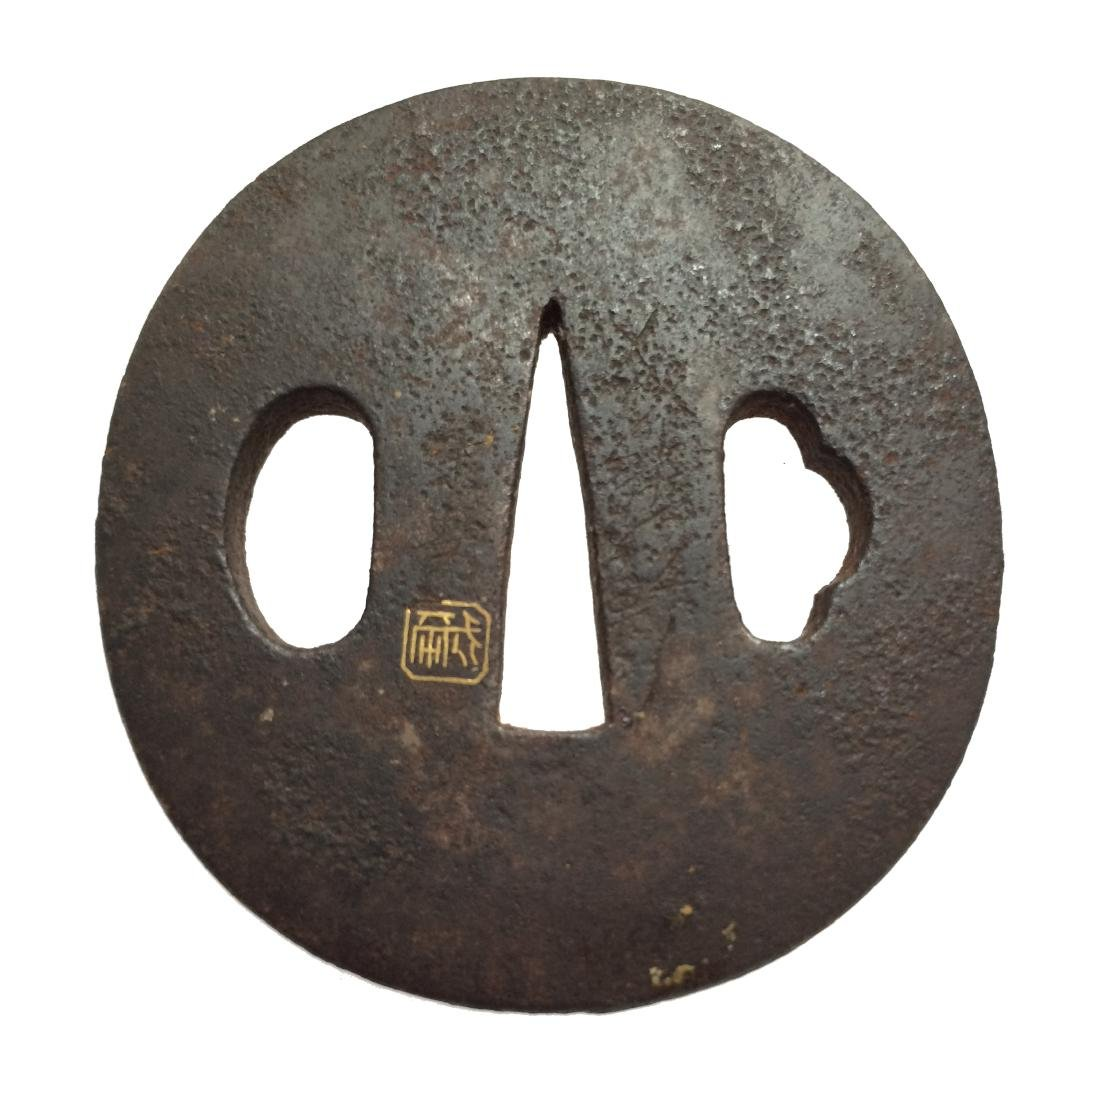 Iron tsuba with artists' Kao inlaid in gold